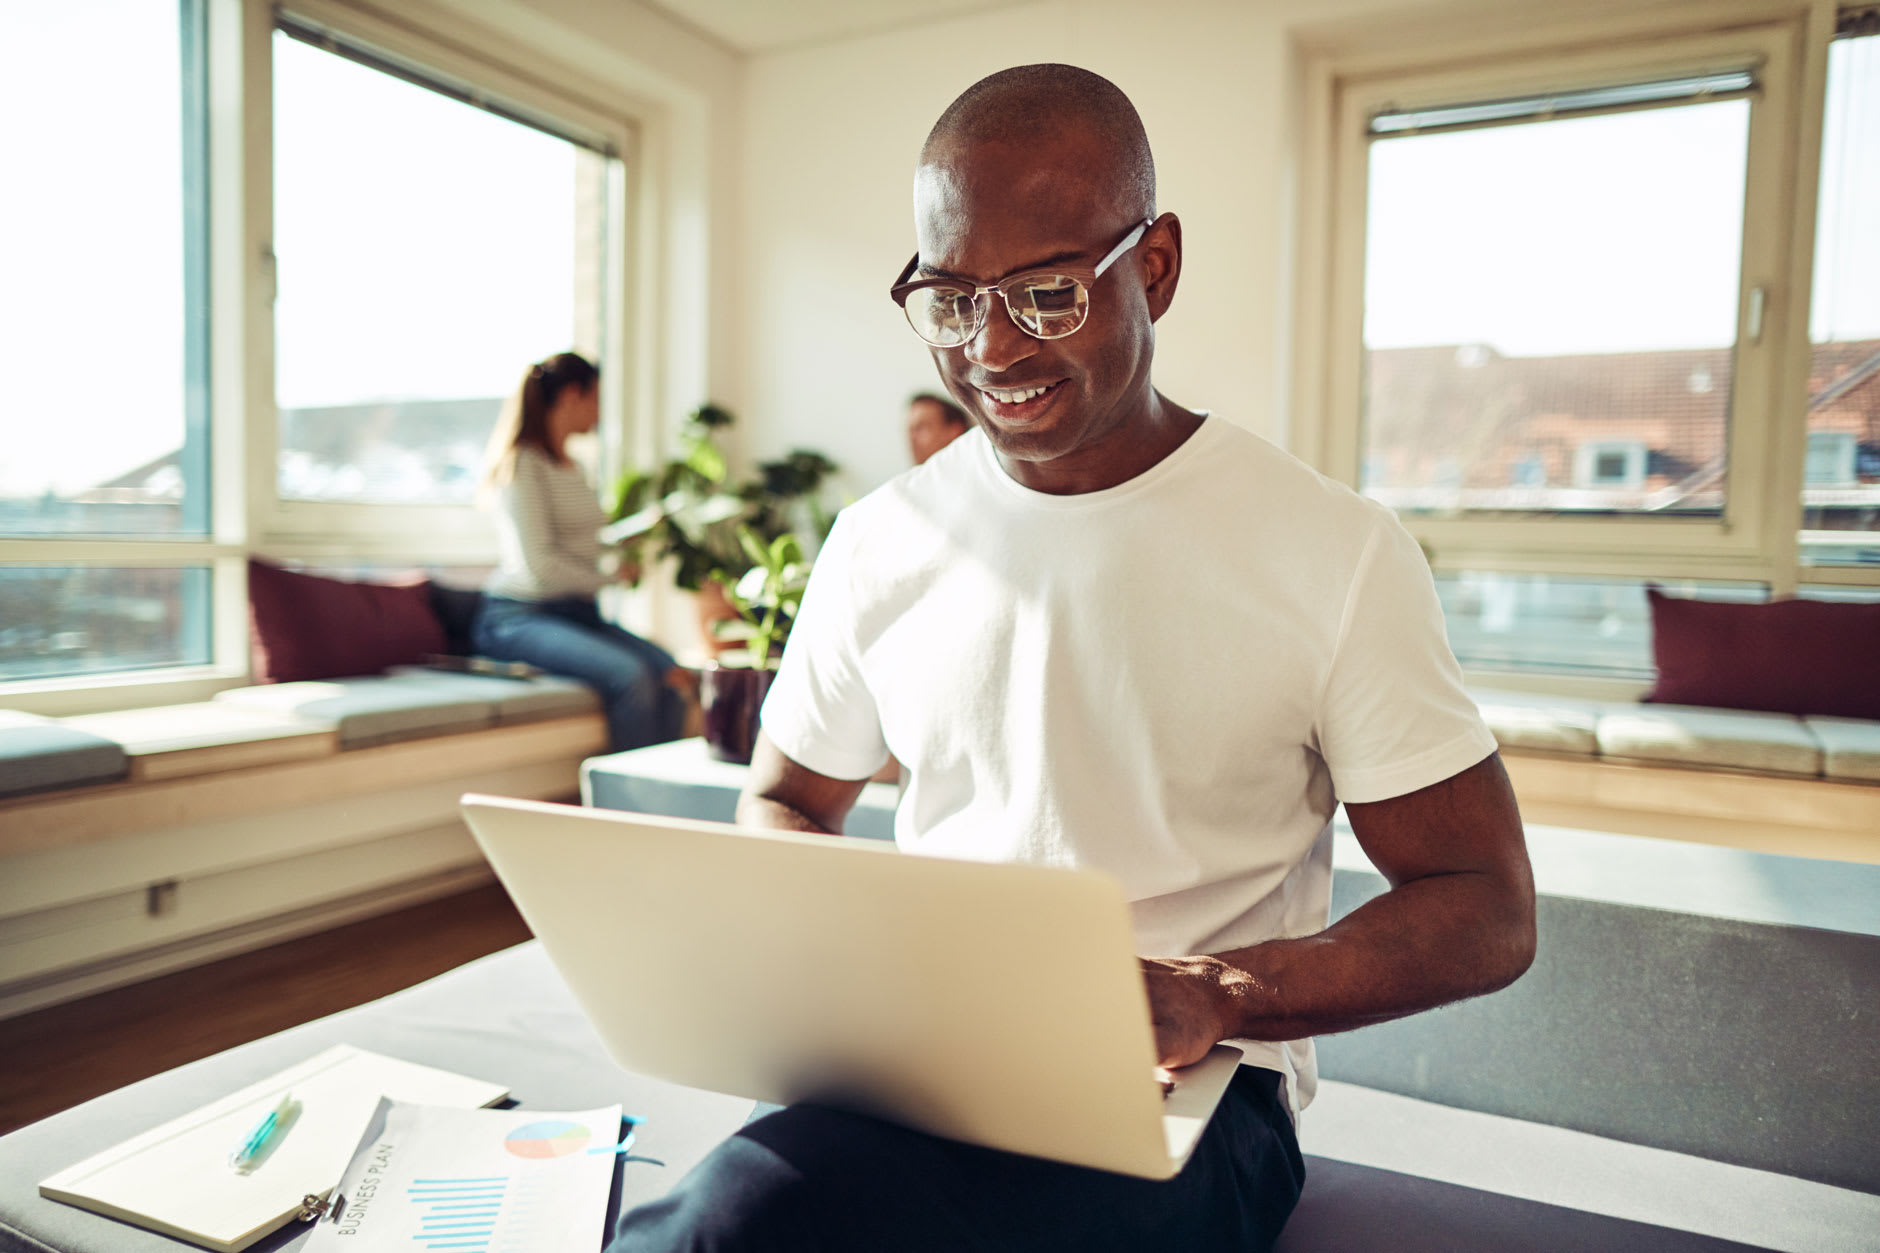 A man in glasses wearing a white shirt sits in an office reading a guide on how to clean and care for dentures on his laptop.